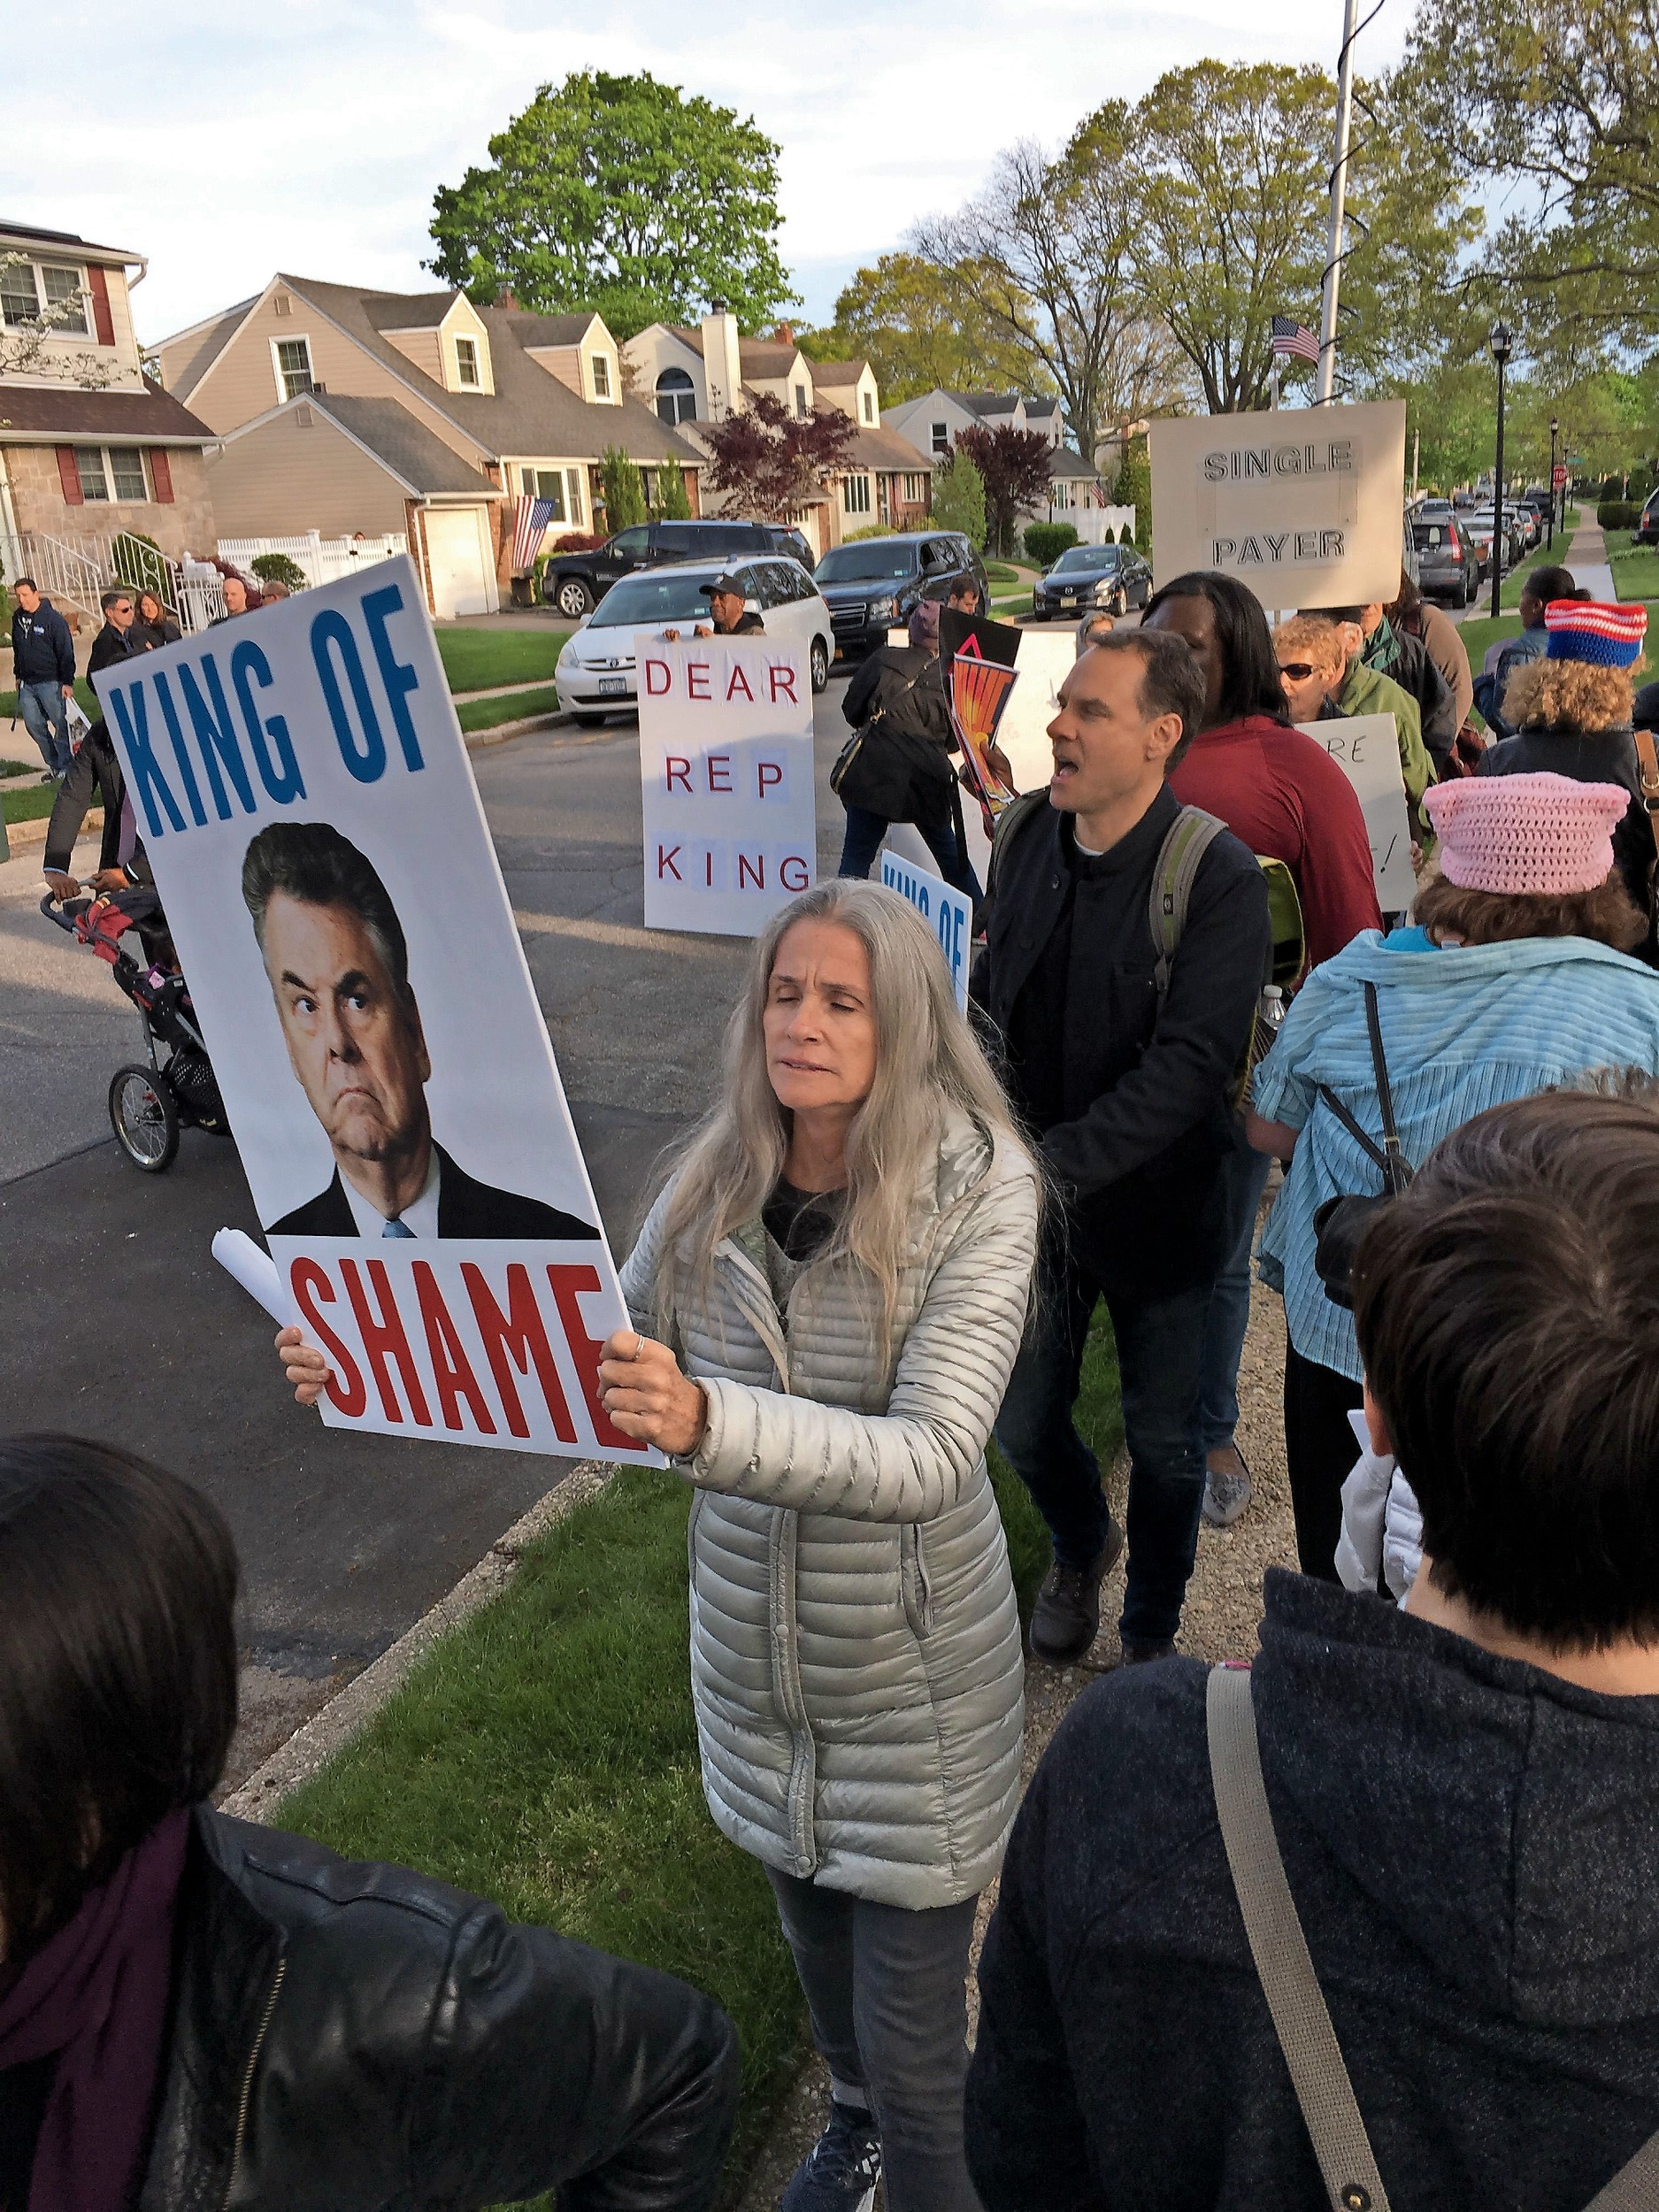 Long Island and New York City residents protested outside U.S. Rep. Peter King's home in Seaford on May 11.